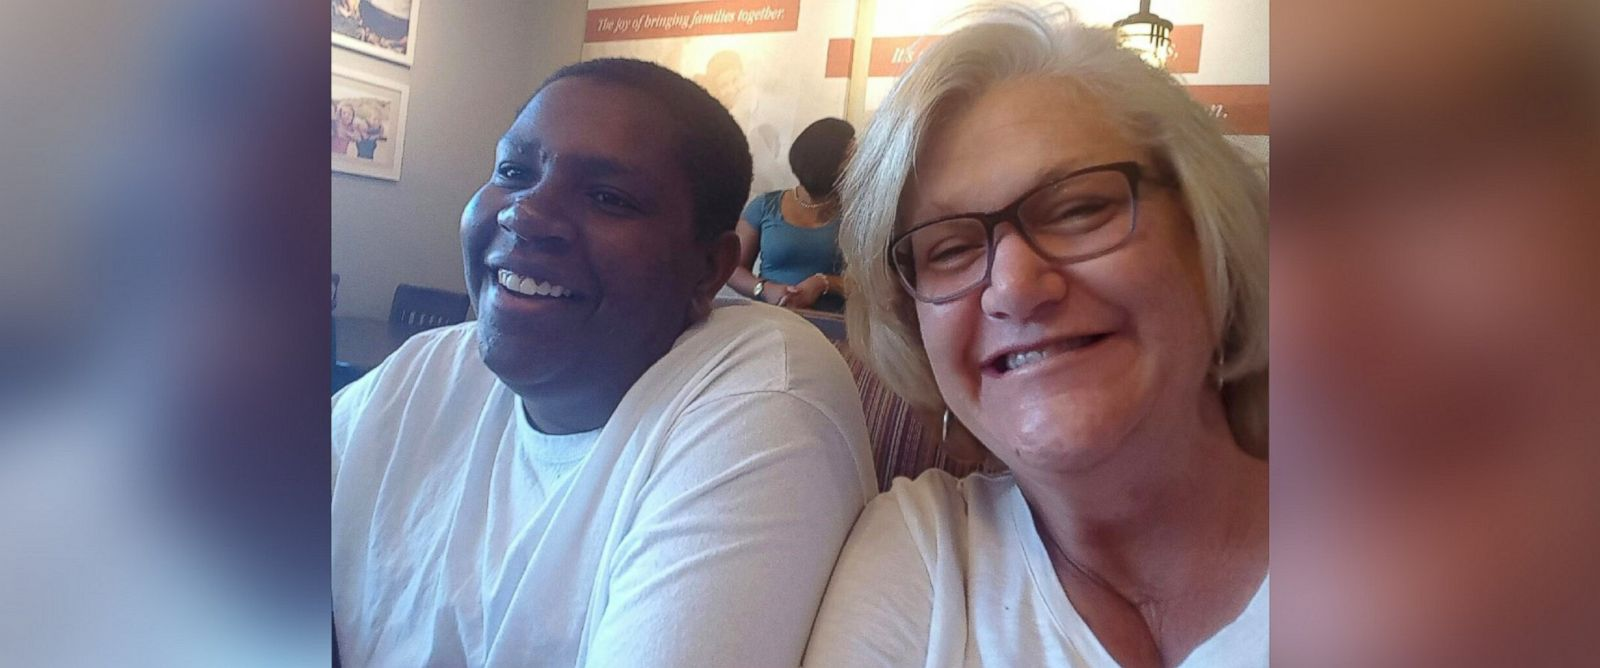 PHOTO: Davion Only-Going, 19, who captured the worlds heart in 2013 when he publicly pleaded for a family, was adopted by his former caseworker Connie Going in 2015.